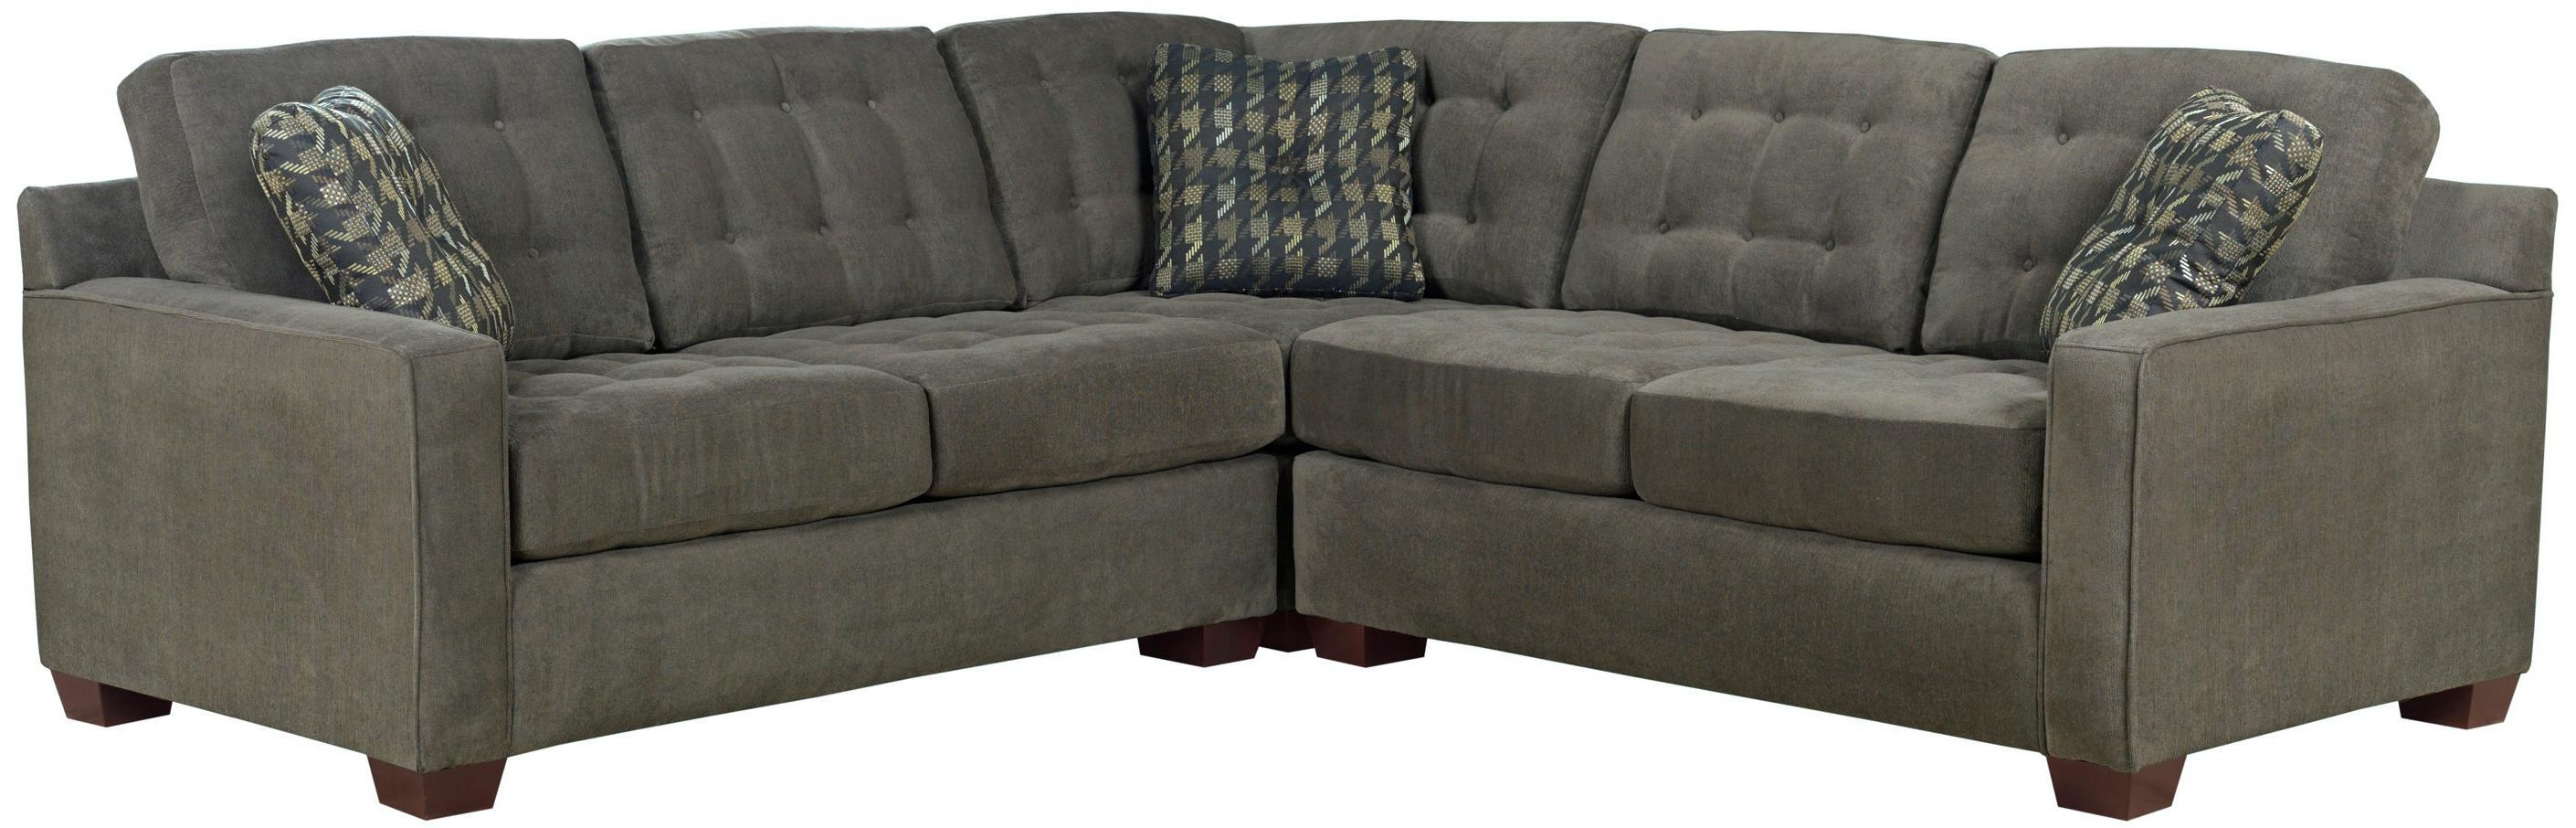 Broyhill Furniture Tribeca Contemporary L Shaped Sectional Sofa For Broyhill Sectional Sofas (Image 6 of 15)